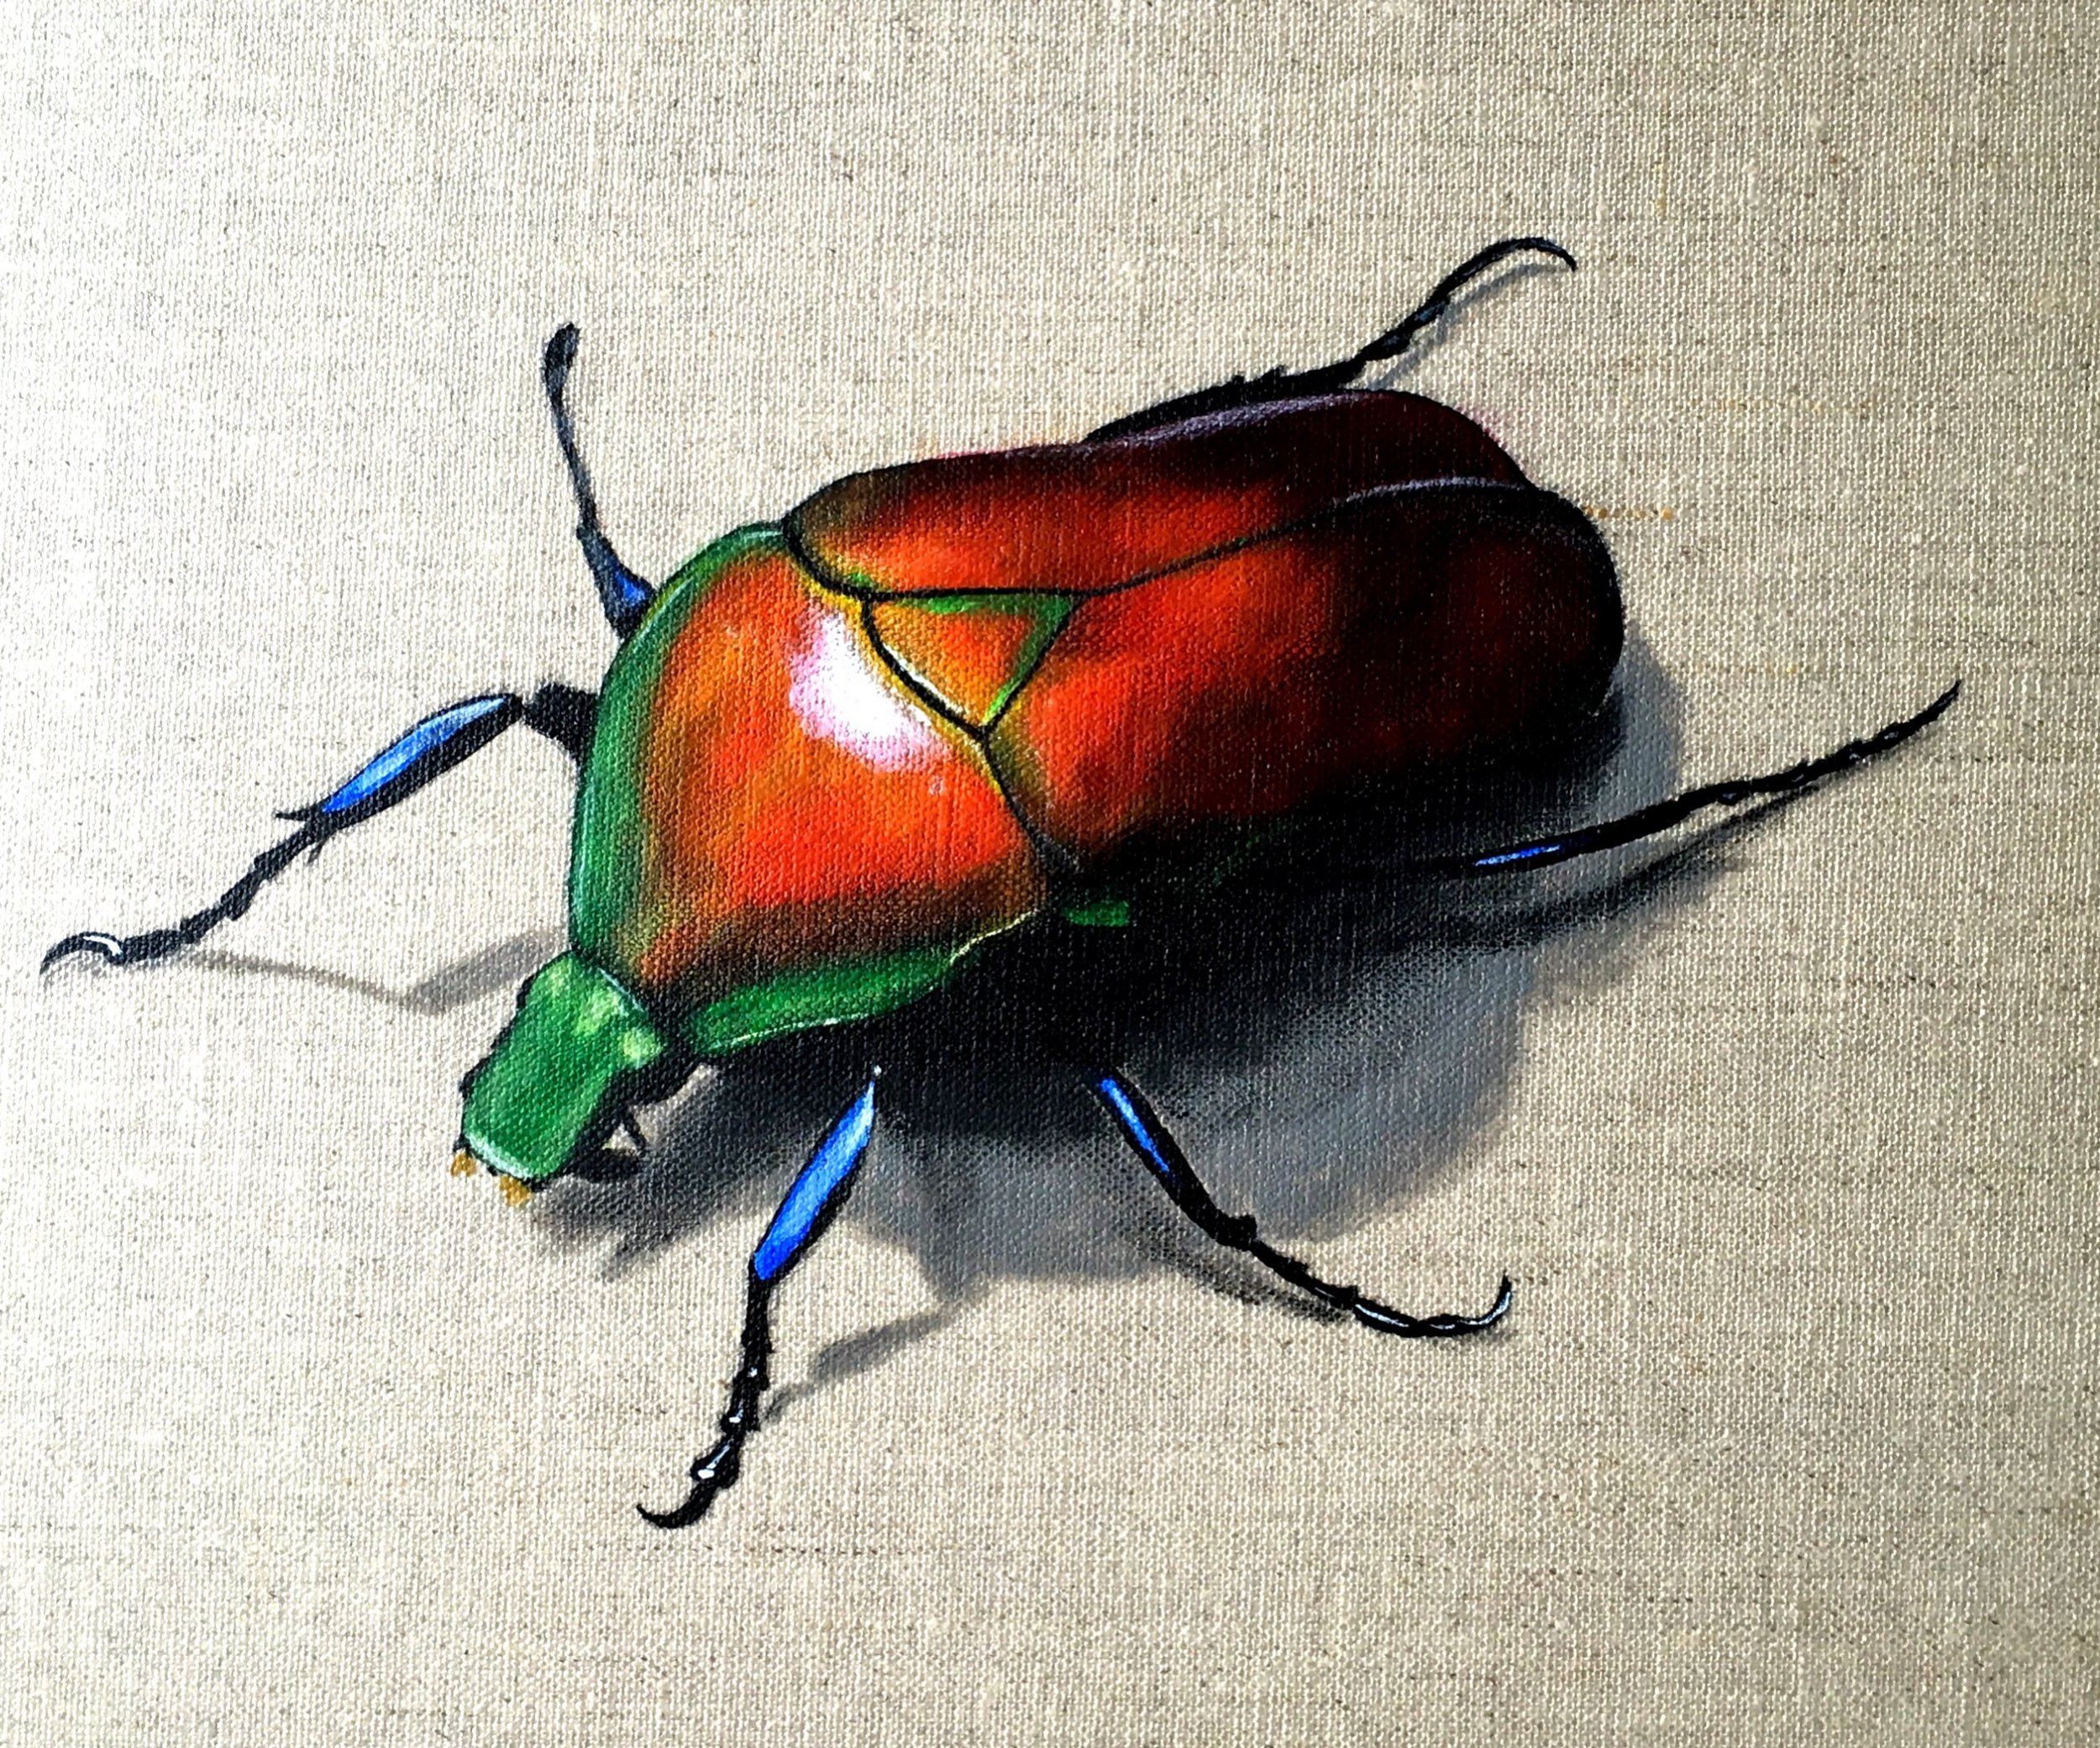 Colourful Beetle